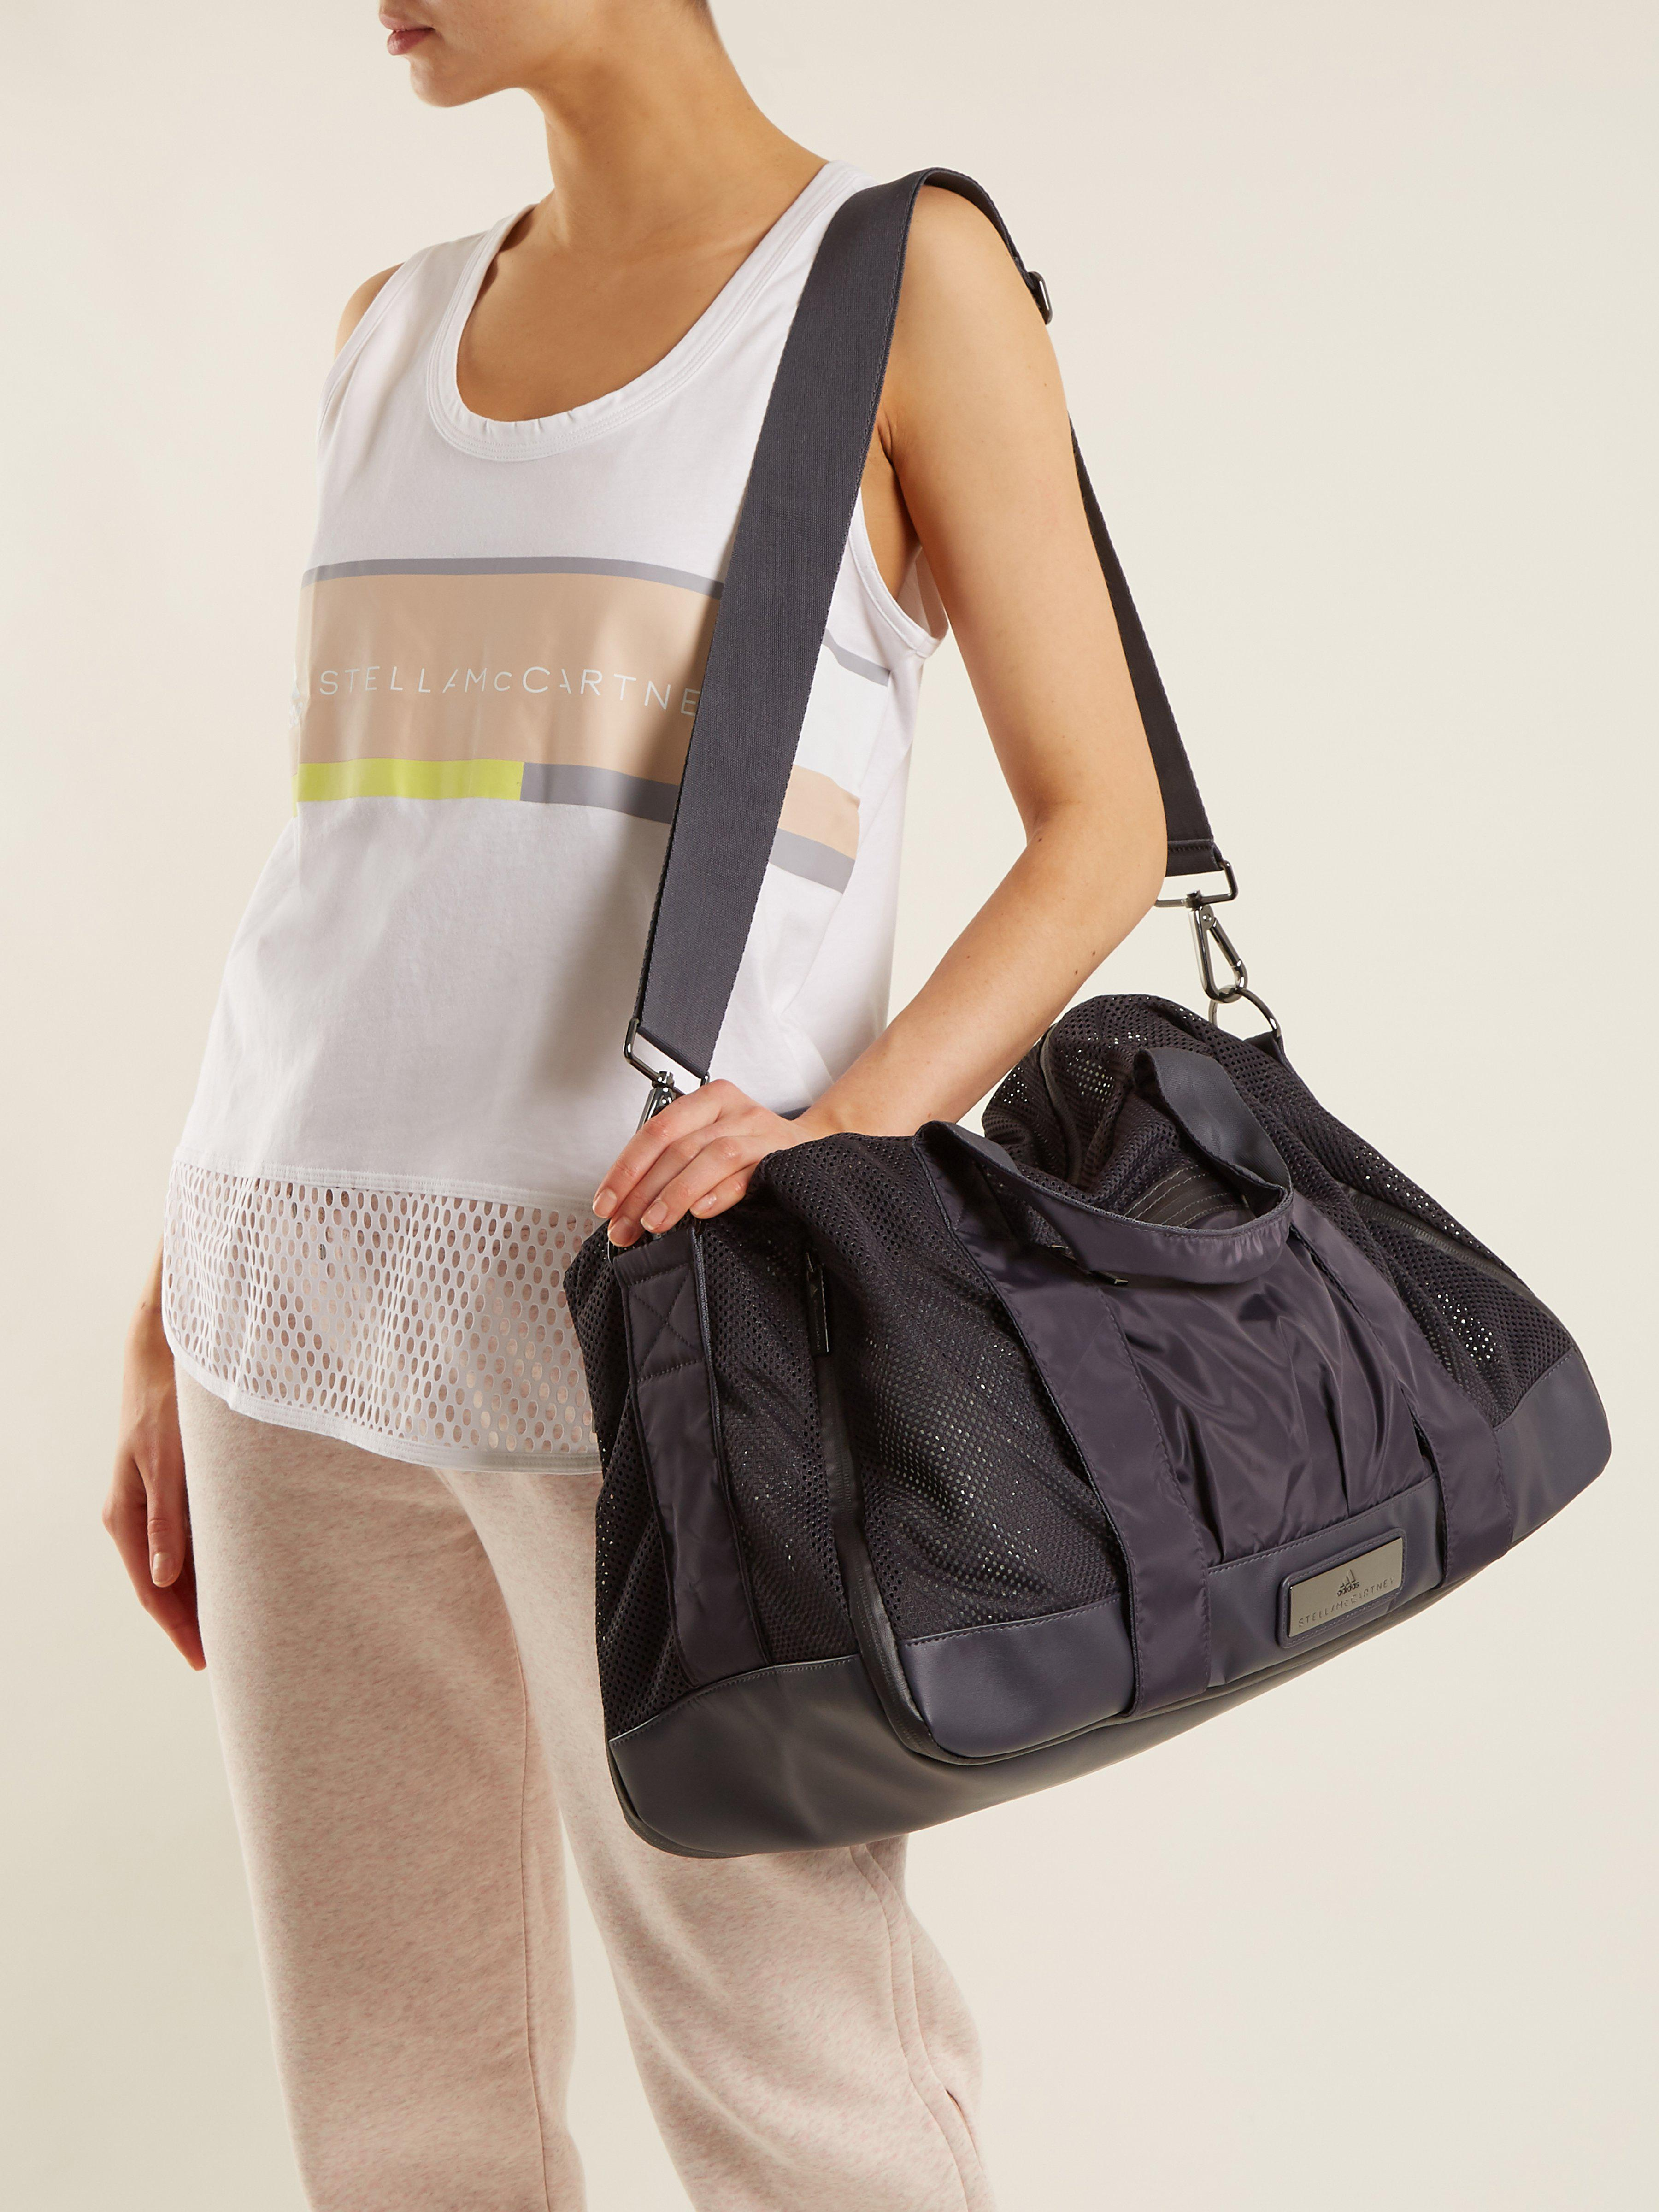 Adidas By Stella Mccartney Yoga Holdall Bag in Blue - Lyst c4ccd48bfb1e3